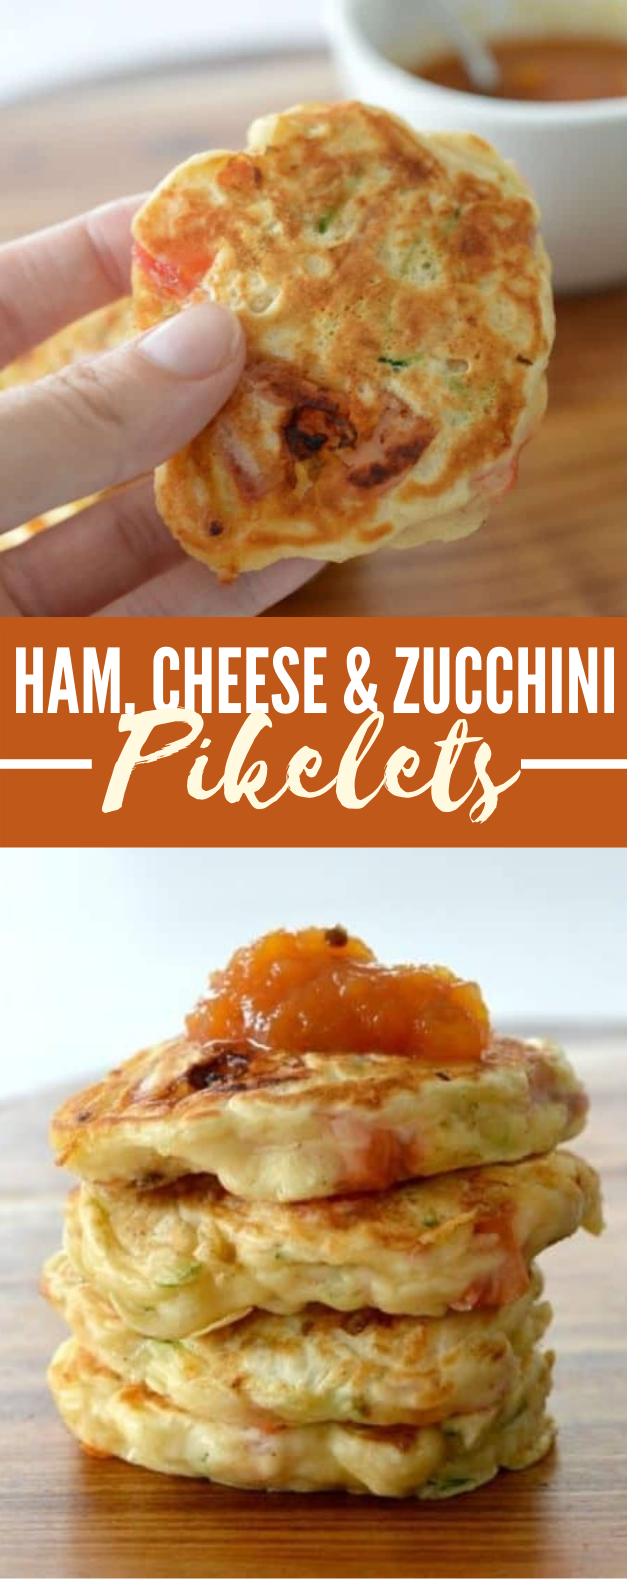 HAM, CHEESE AND ZUCCHINI PIKELETS #lunch #freezerfriendly  #meals #comfortfood #easyrecipe